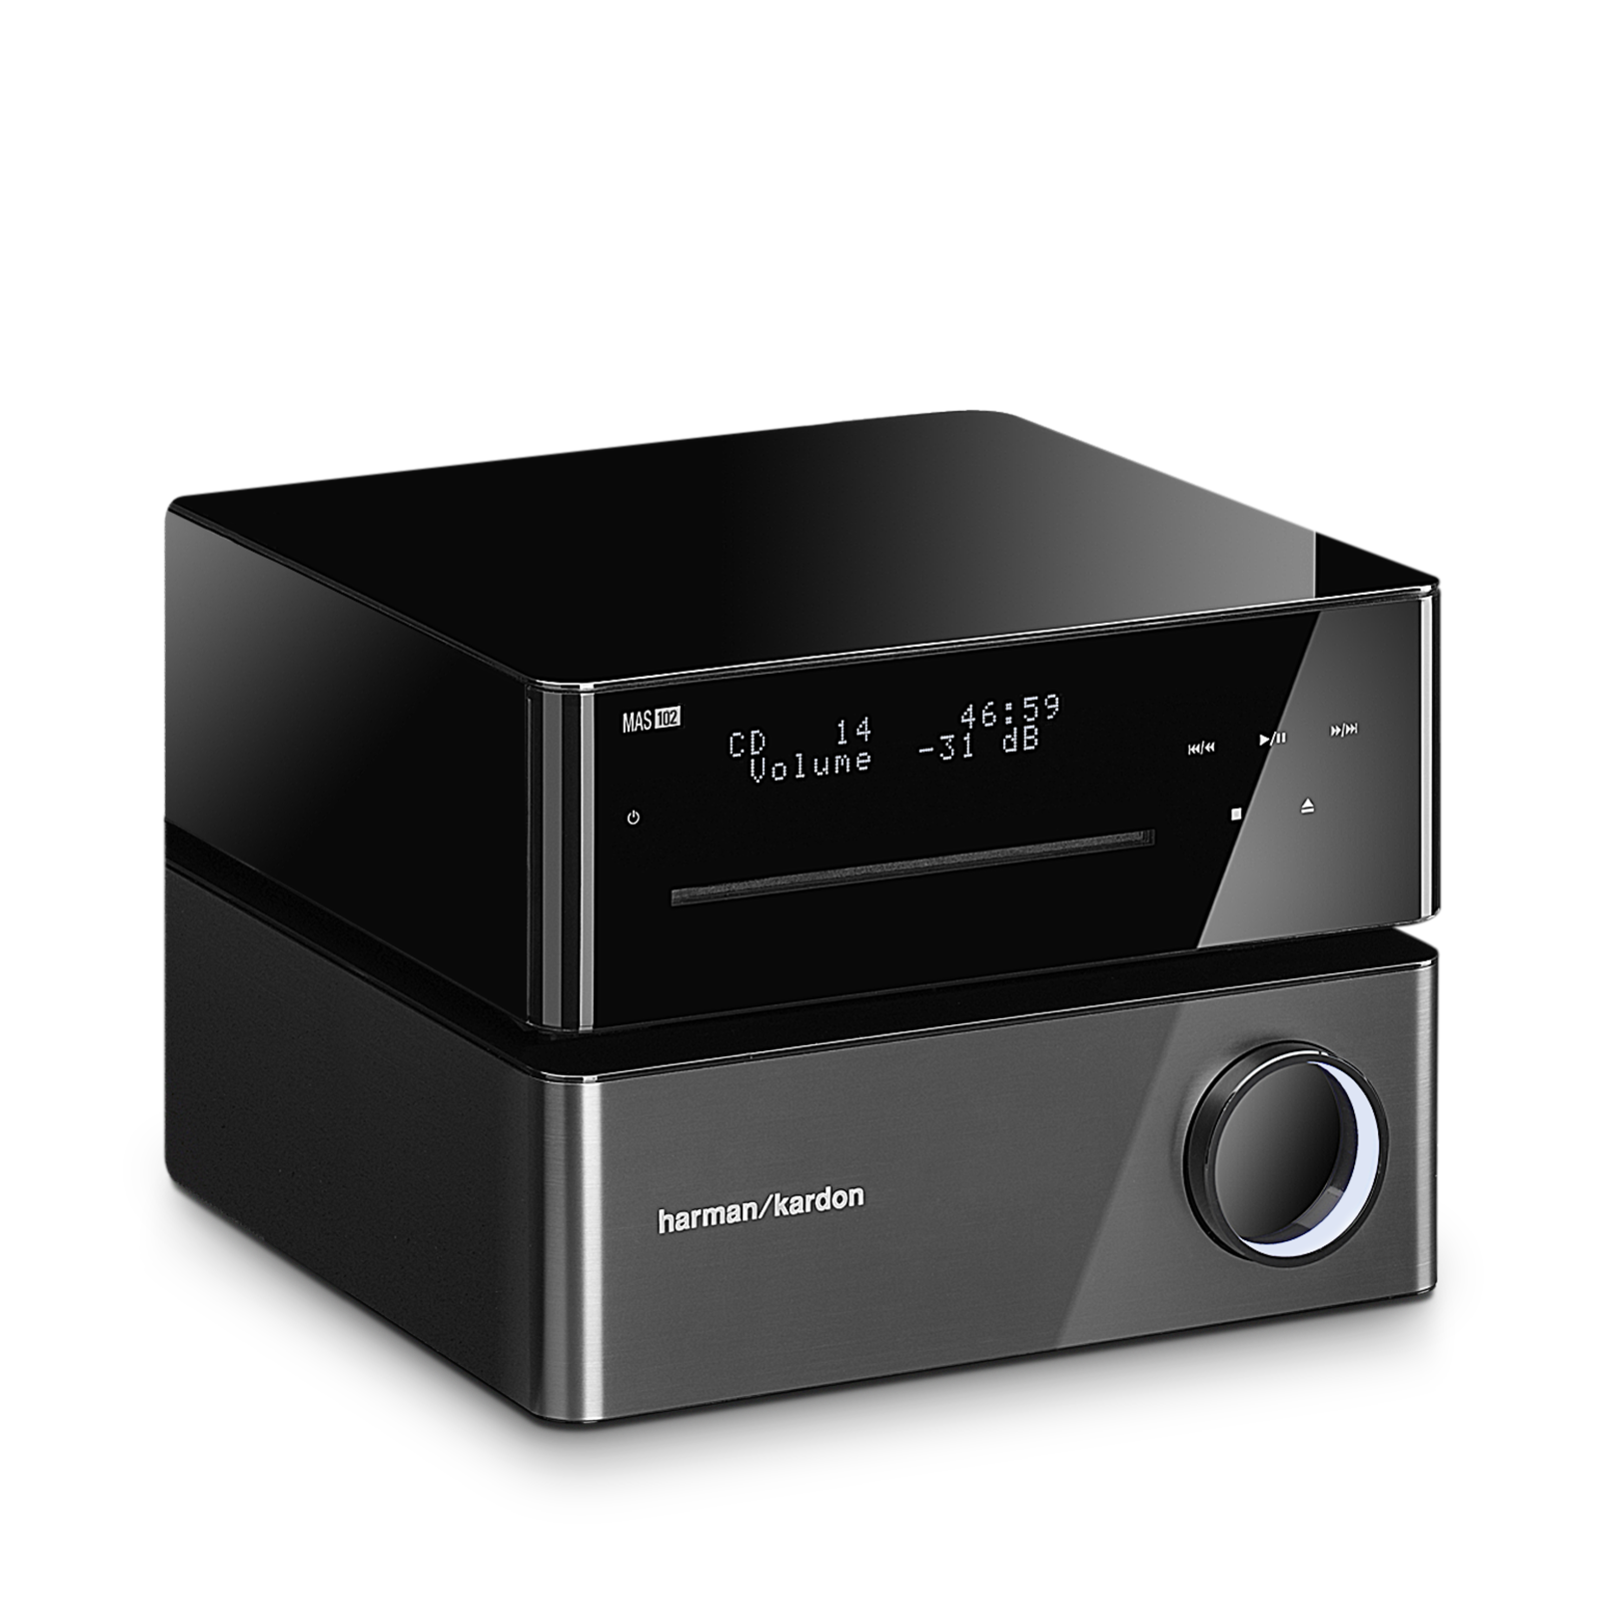 Harman Kardon MAS 102 CD Player and Amplifier w/ Free MAS Speakers $200 + Free Shipping!